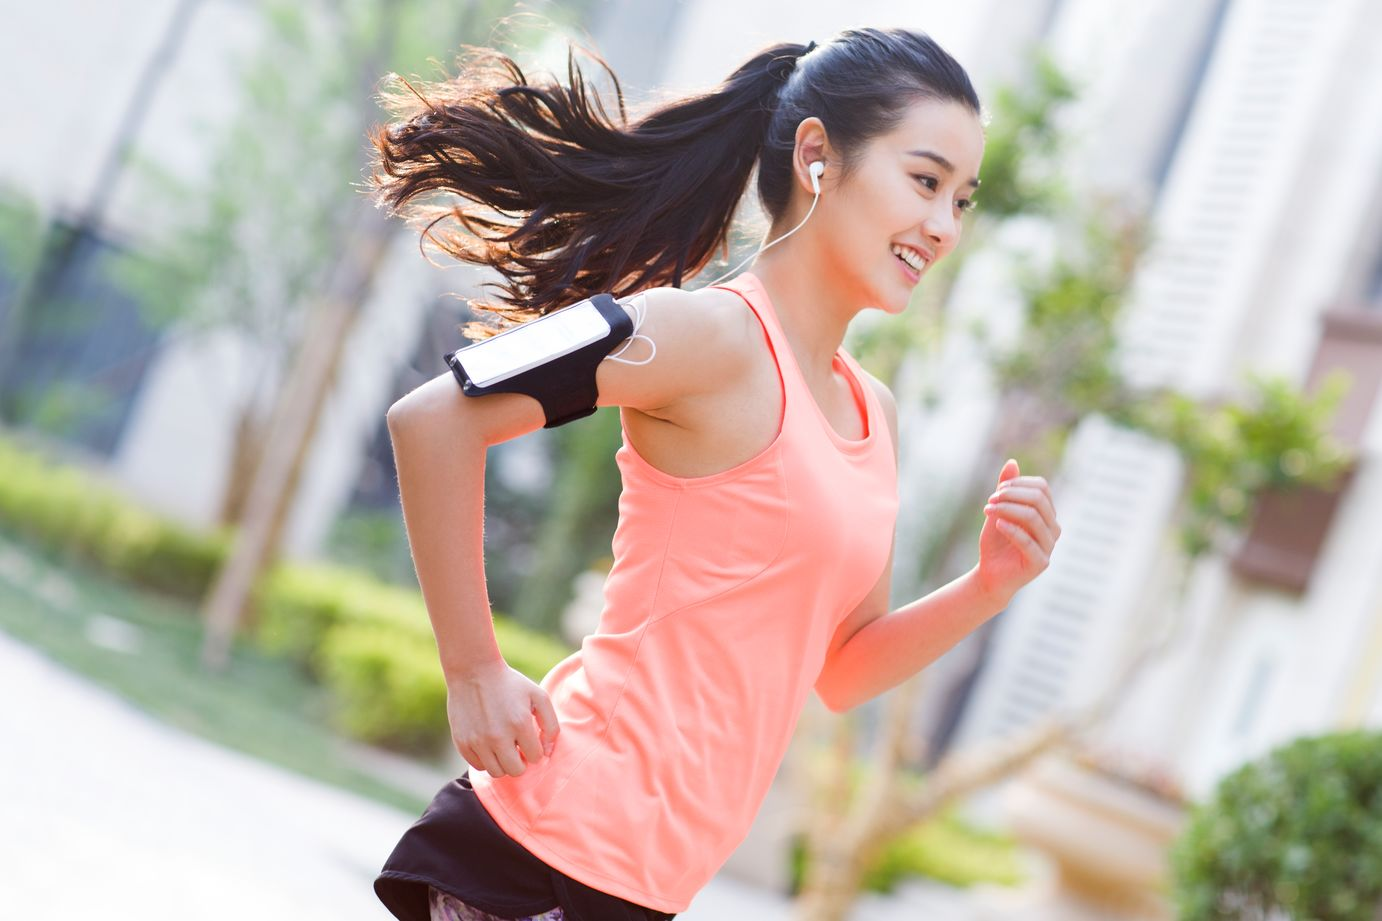 A 19 year old woman with black hair in a ponytail wears a peach tank top and has her phone strapped to her arm and earbuds in her ears. She is smiling as she runs outside.